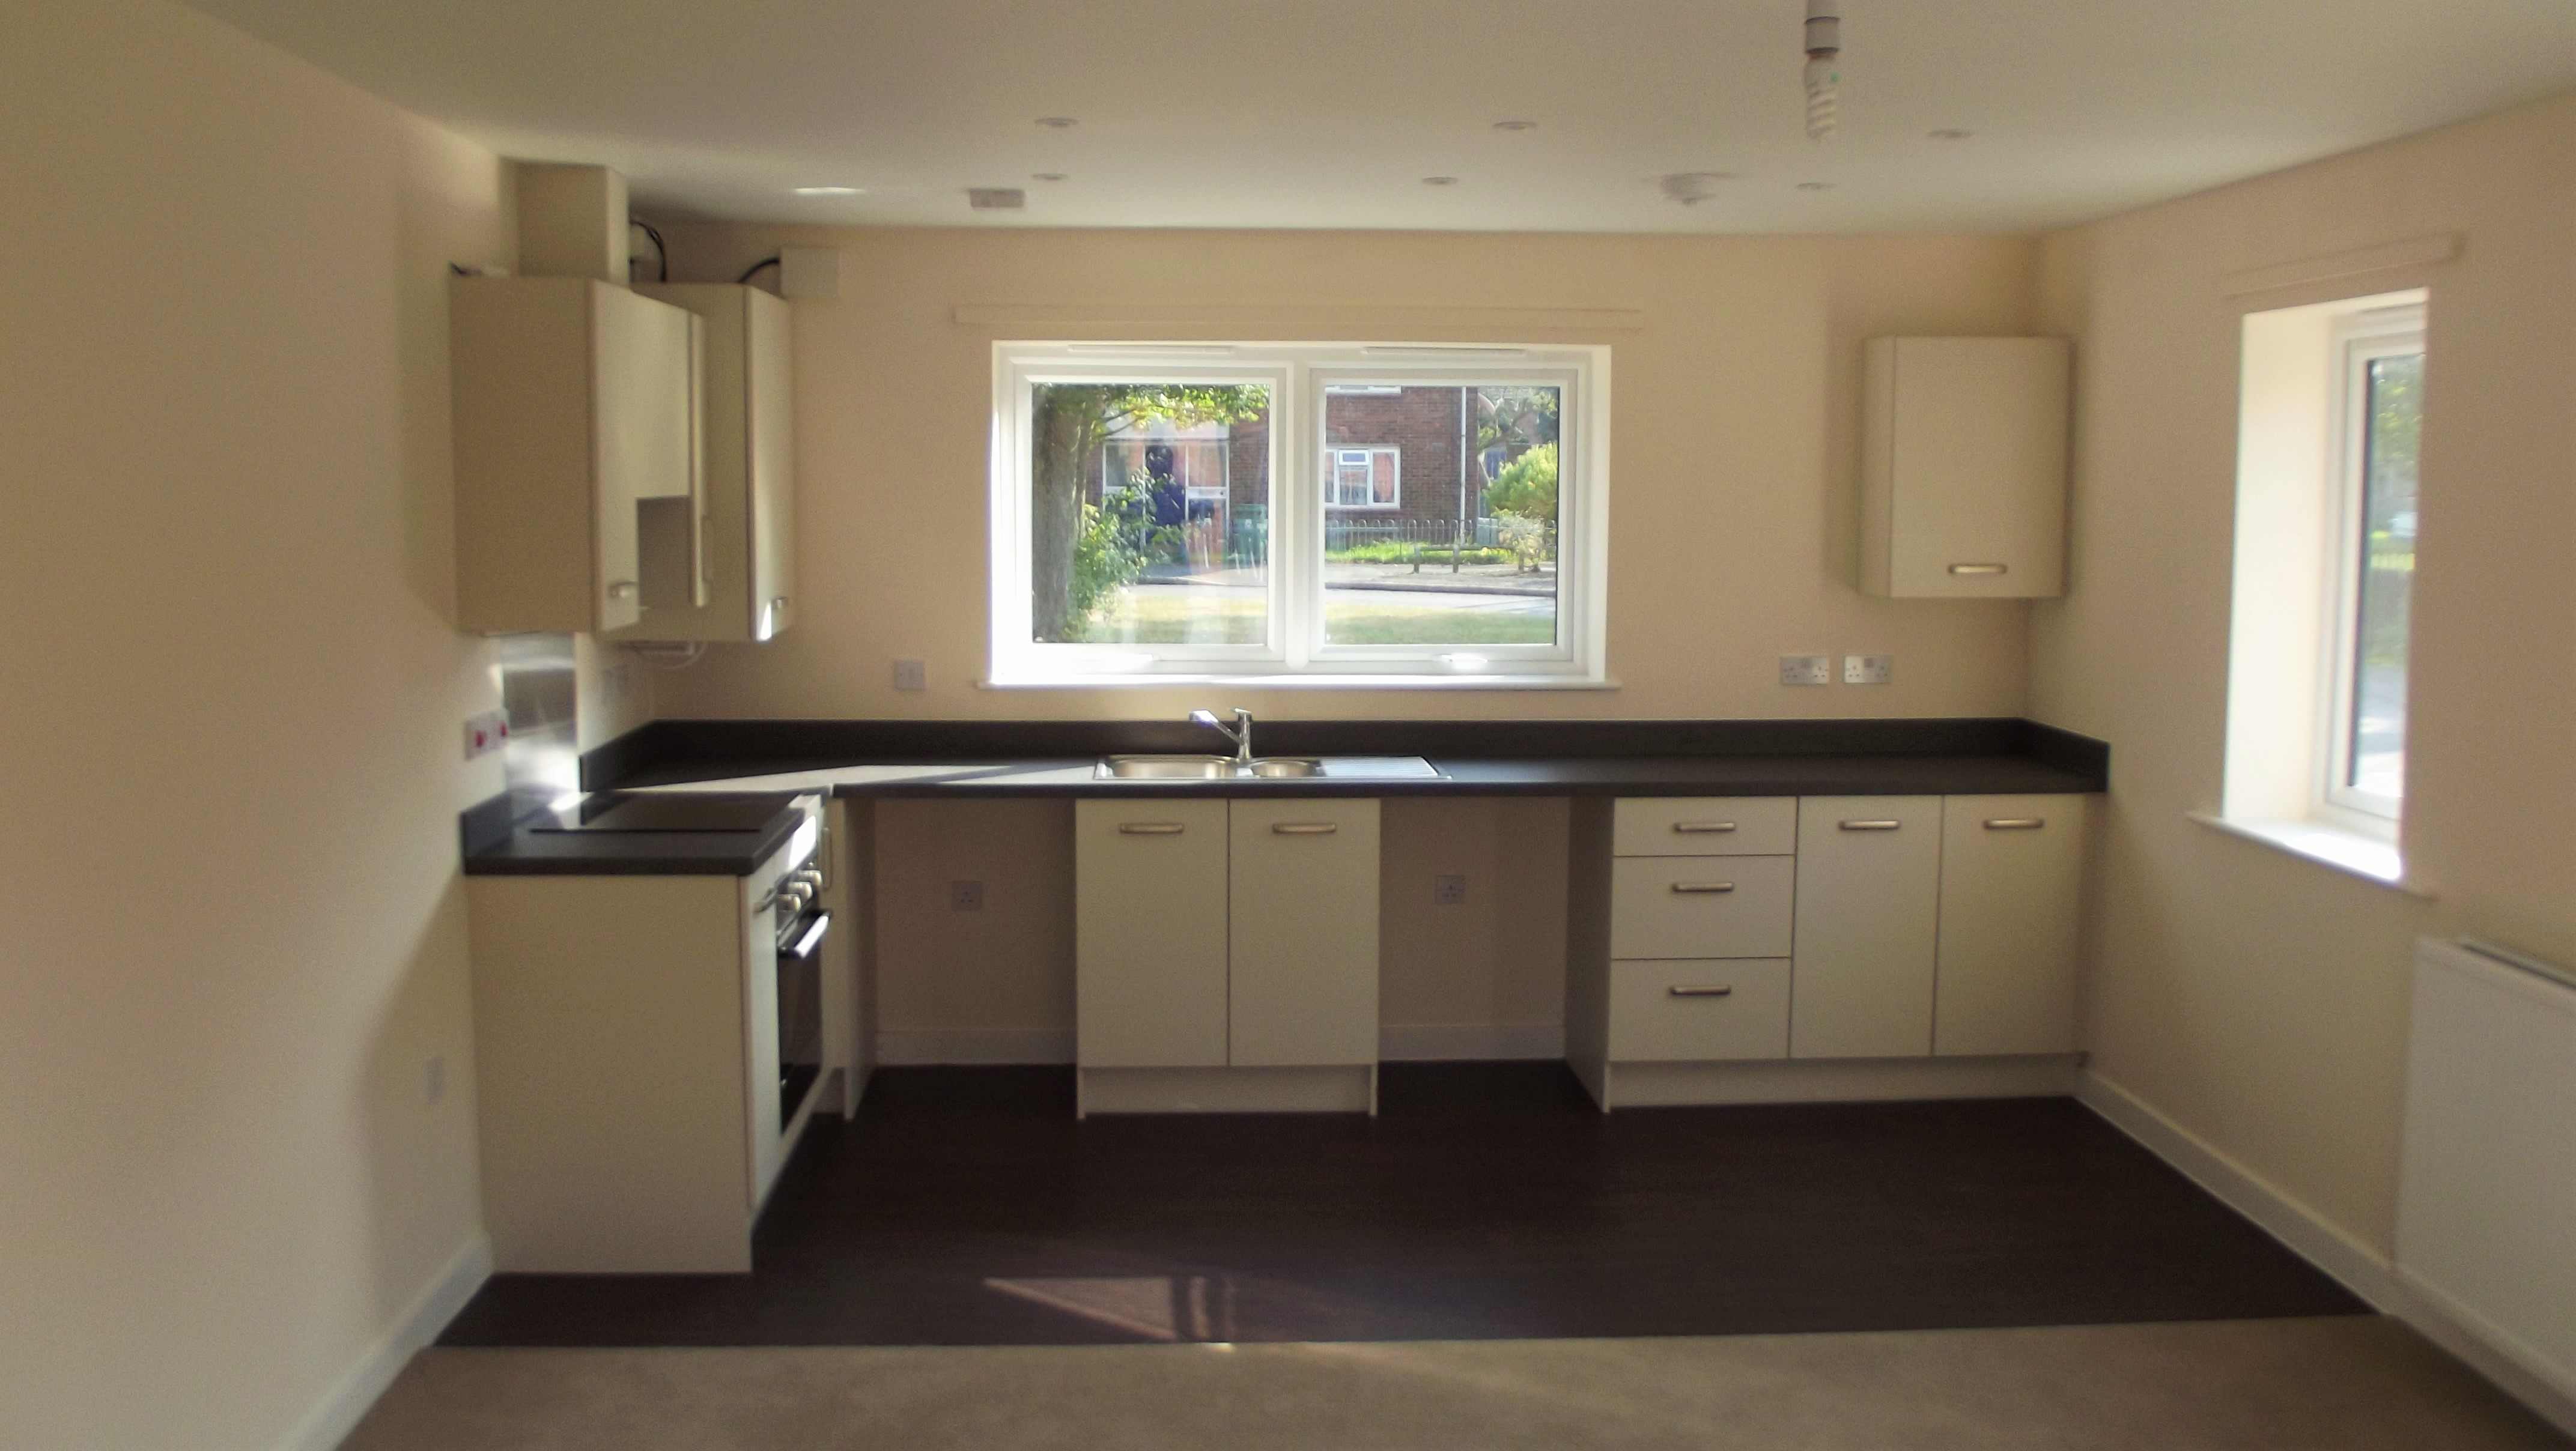 Two Bedroom Apartments To Rent  NEW PRICE  PCM  GUARANTEED - Two bedroom apartments for rent